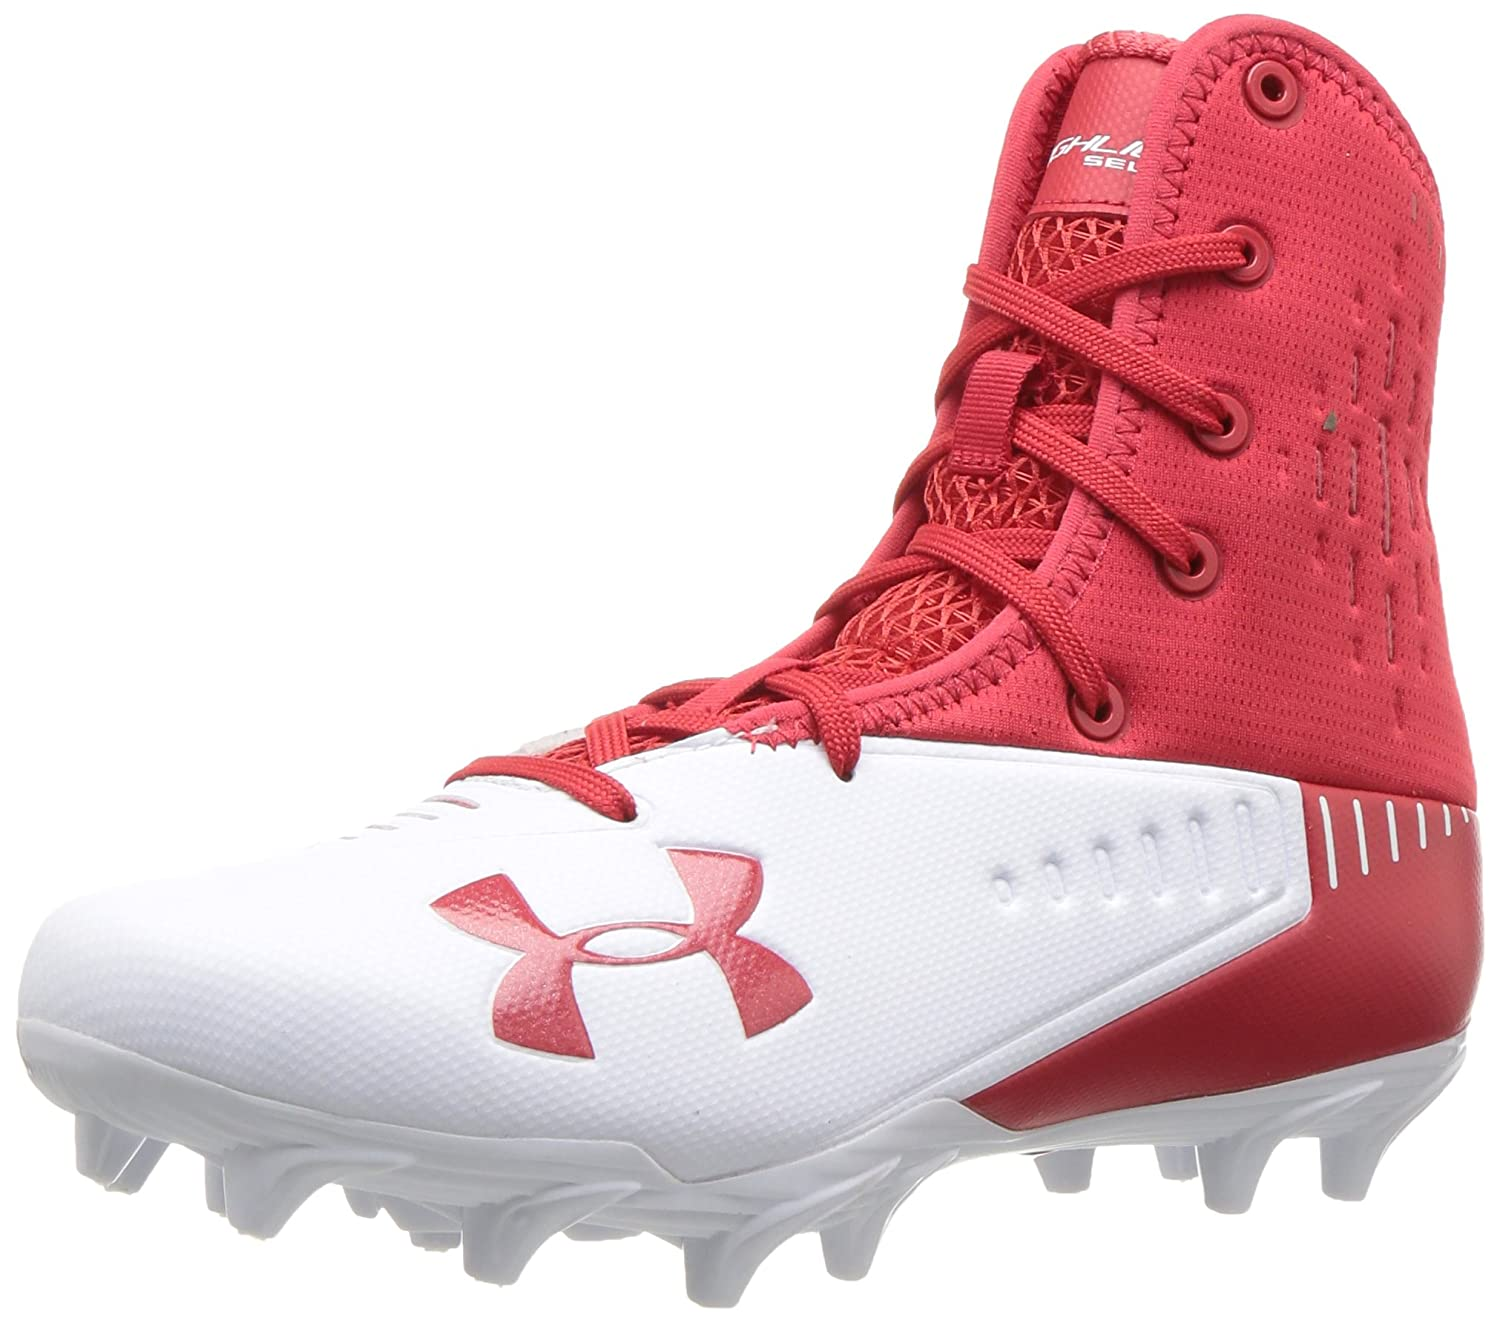 Under Armour Men's Highlight Select MC Football Shoe B071Z92DYB 8.5 M US|Red (600)/White